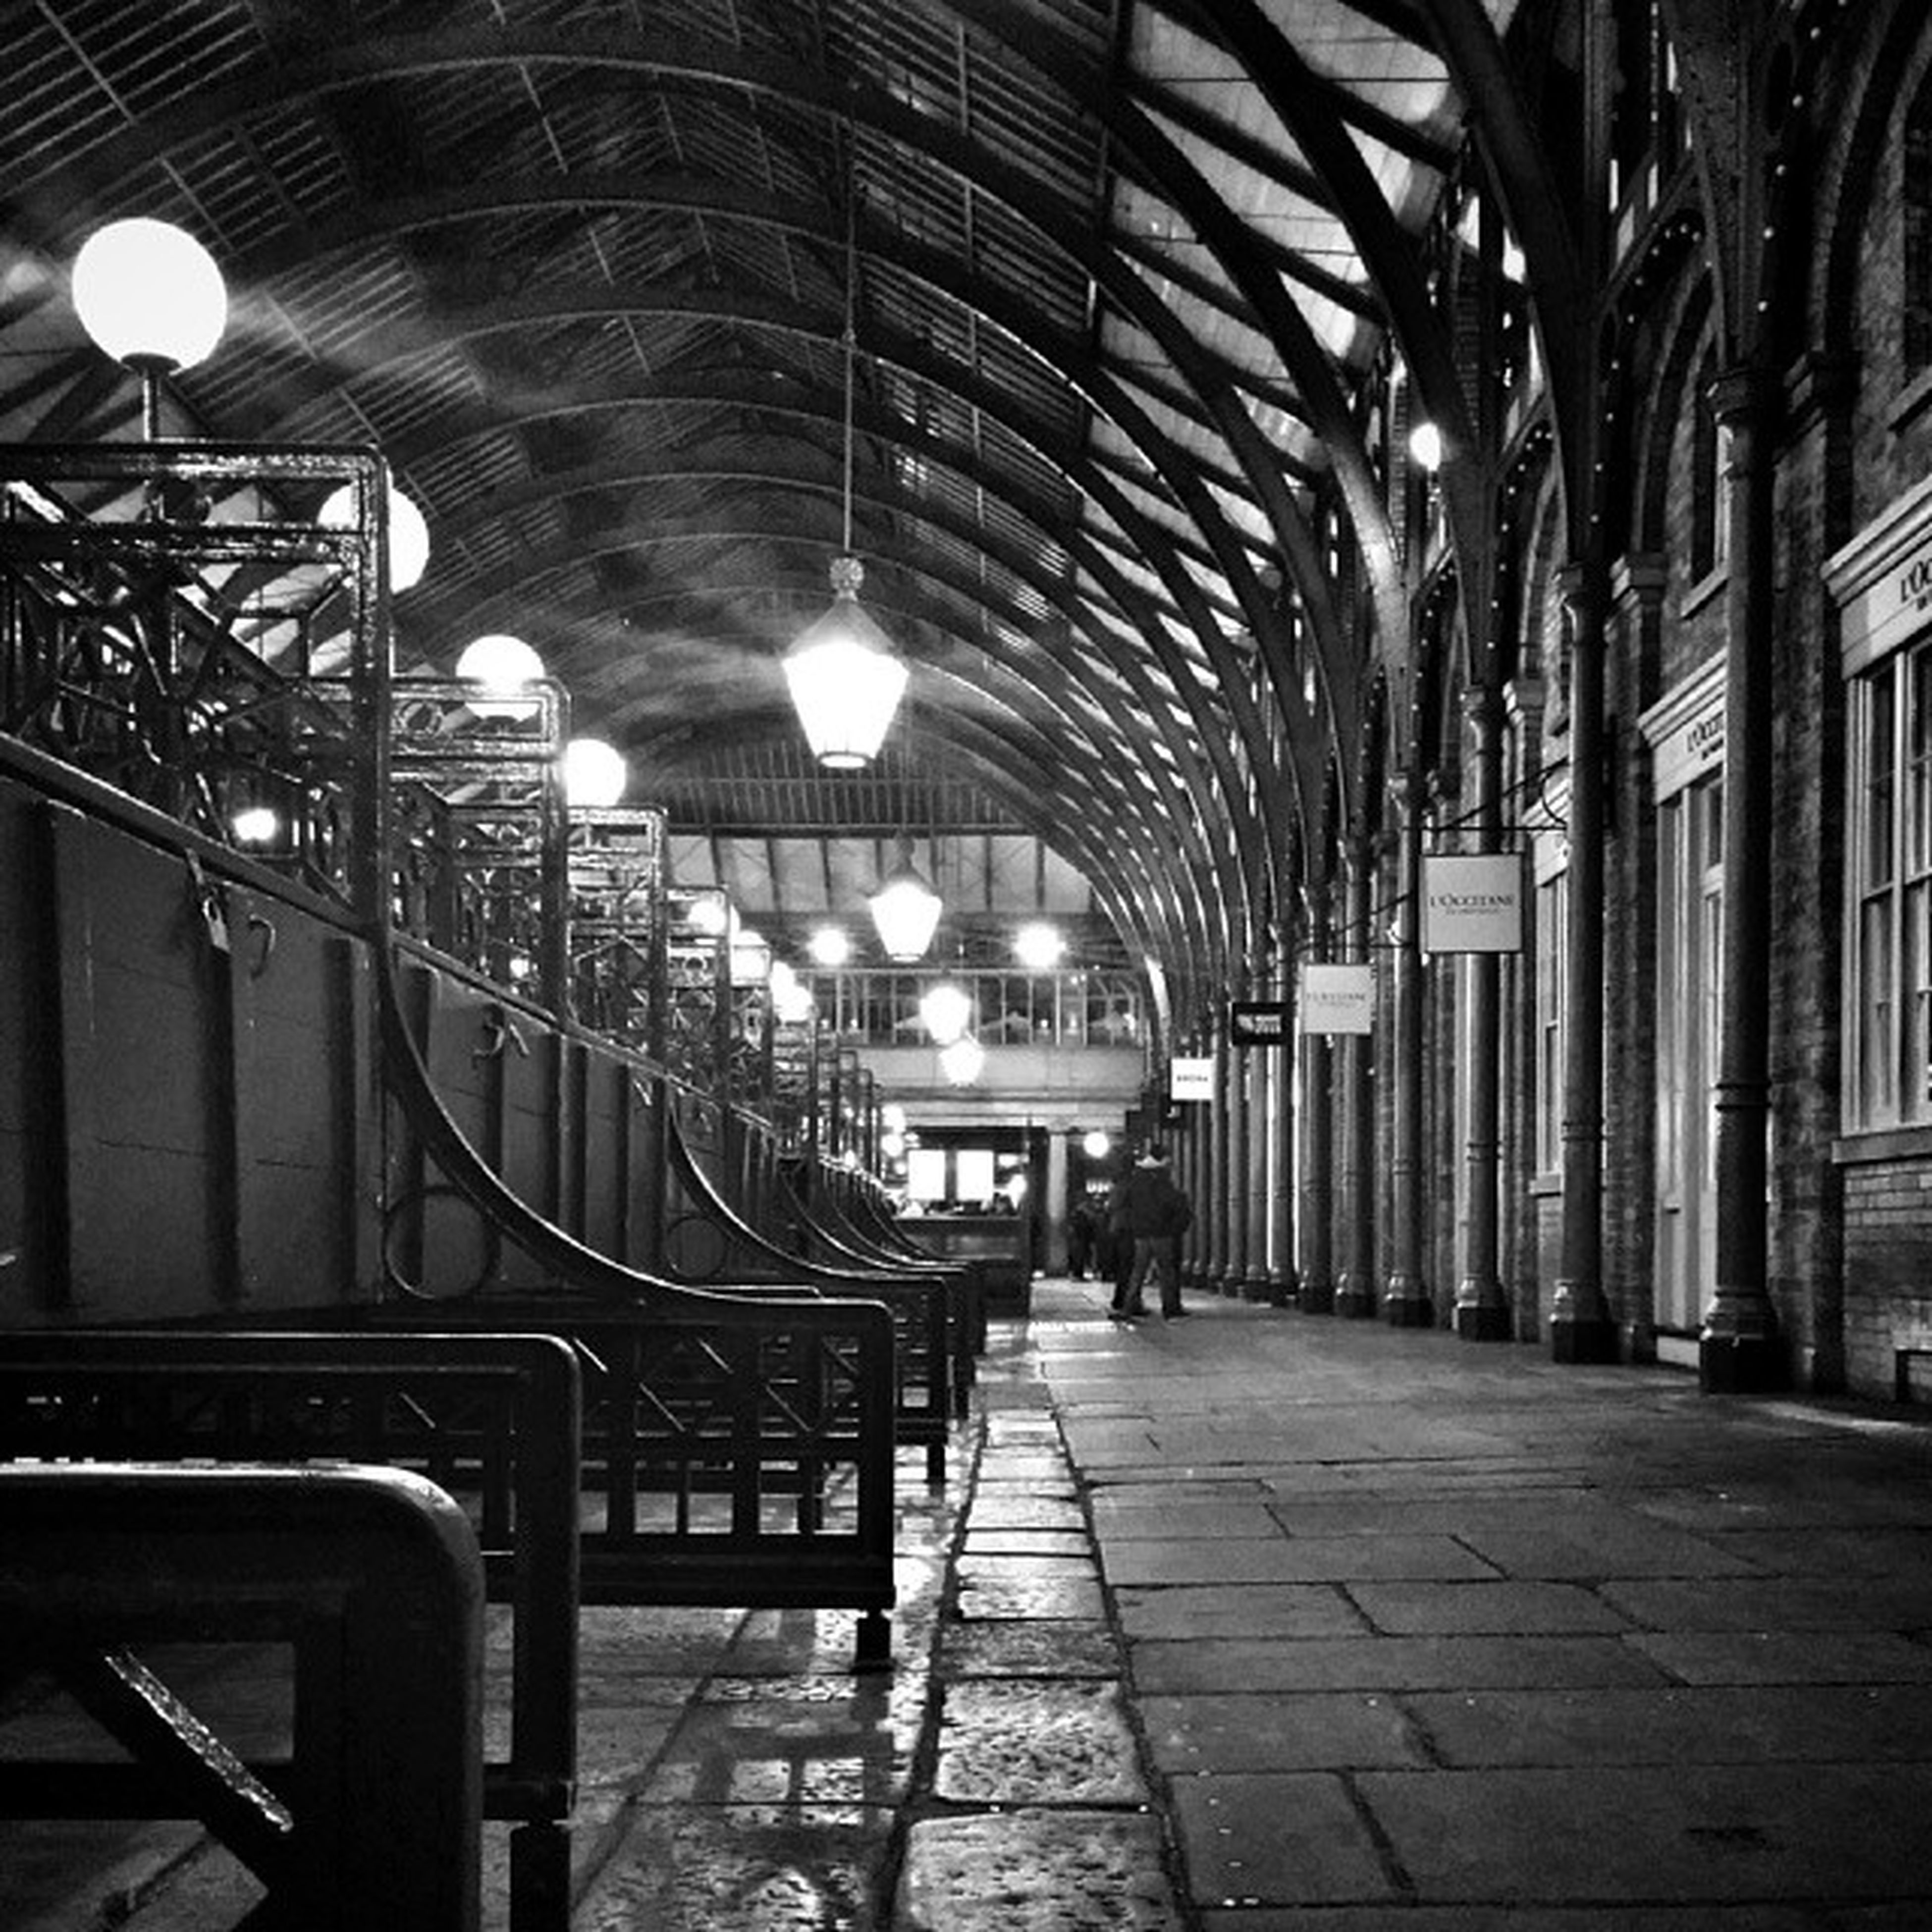 architecture, built structure, building exterior, the way forward, illuminated, lighting equipment, city, incidental people, transportation, street light, diminishing perspective, city life, street, vanishing point, in a row, night, building, person, mode of transport, cobblestone